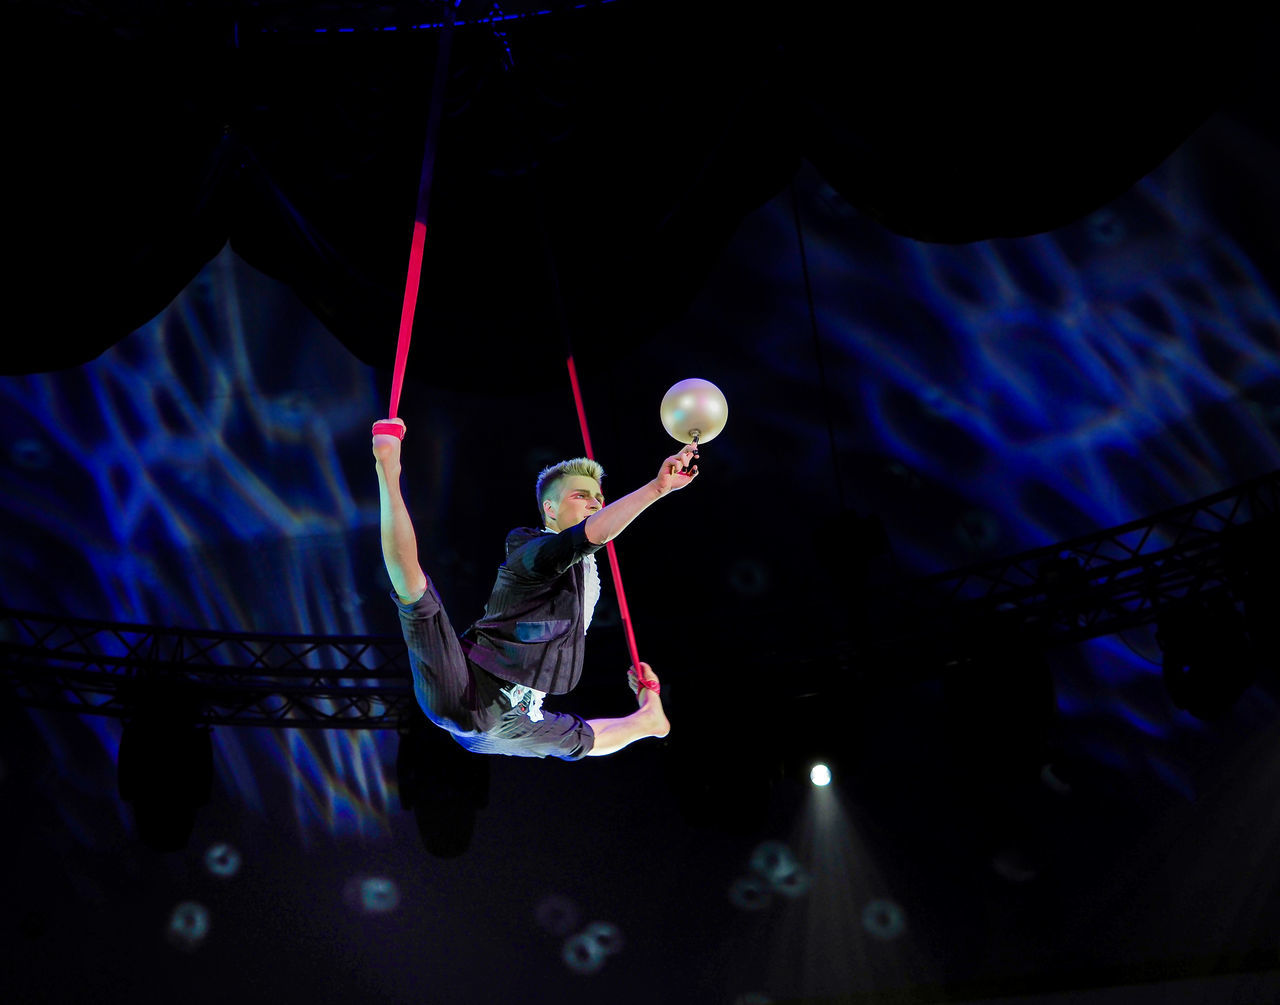 Russia, Moscow, circus, Russian circus, Circus, juggler, juggler in the air Adult Adults Only Astronomy Circus Indoors  Juggler In The Air Moscow Night One Man Only One Person People Russia Russian Circus